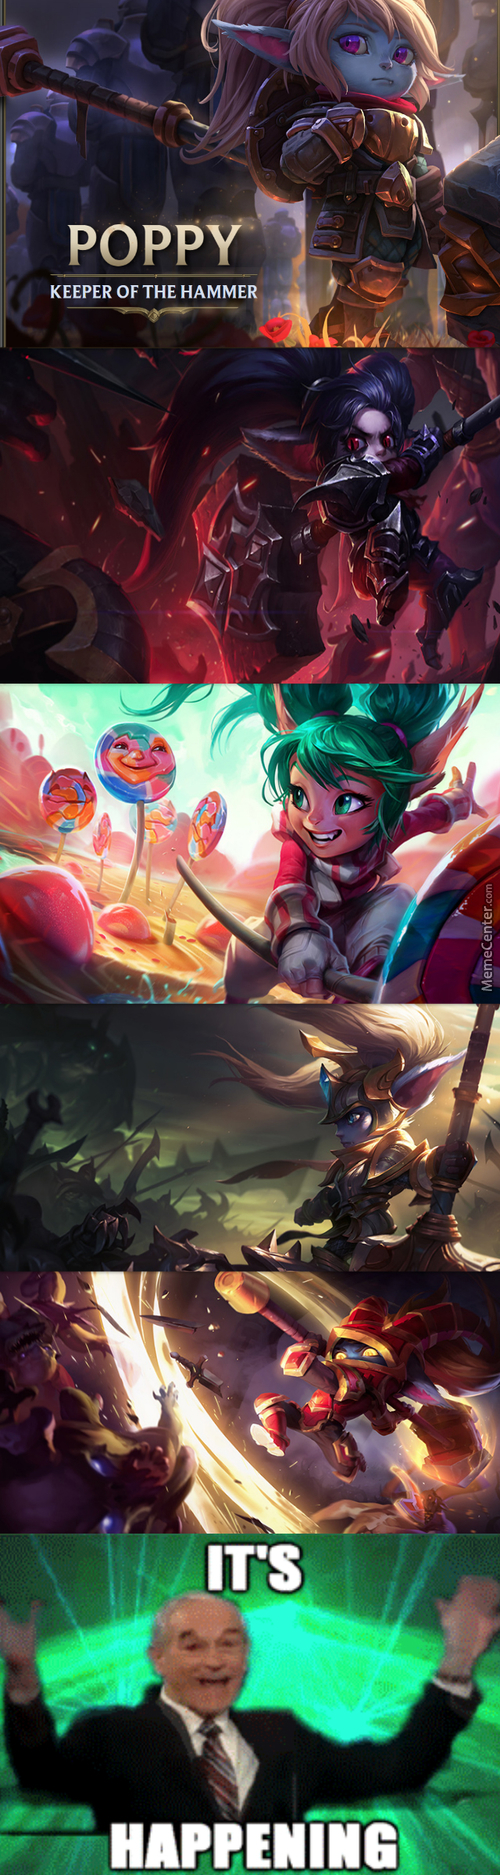 Finally Rito You Made Something Great